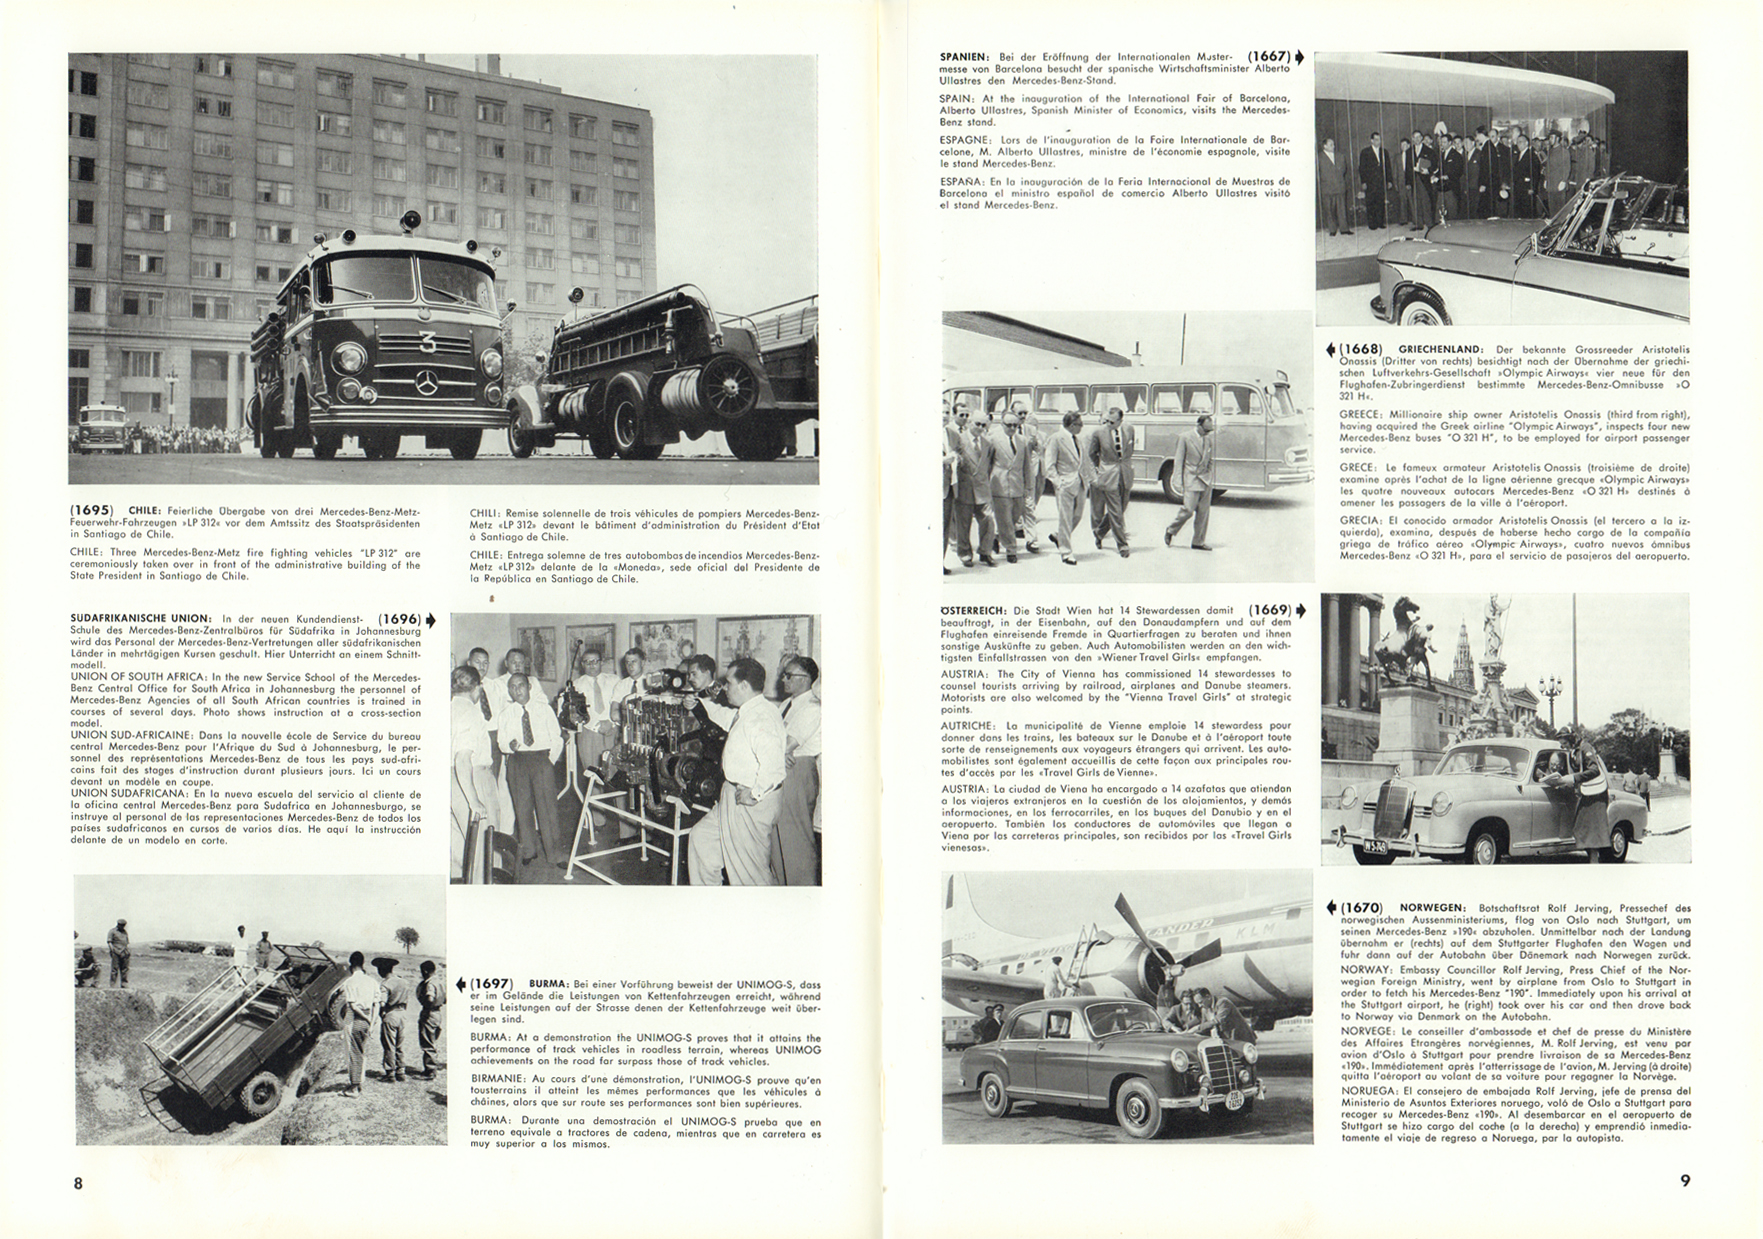 (REVISTA): Periódico In aller welt n.º 12 - Mercedes-Benz no mundo - 1957 - multilingue 005